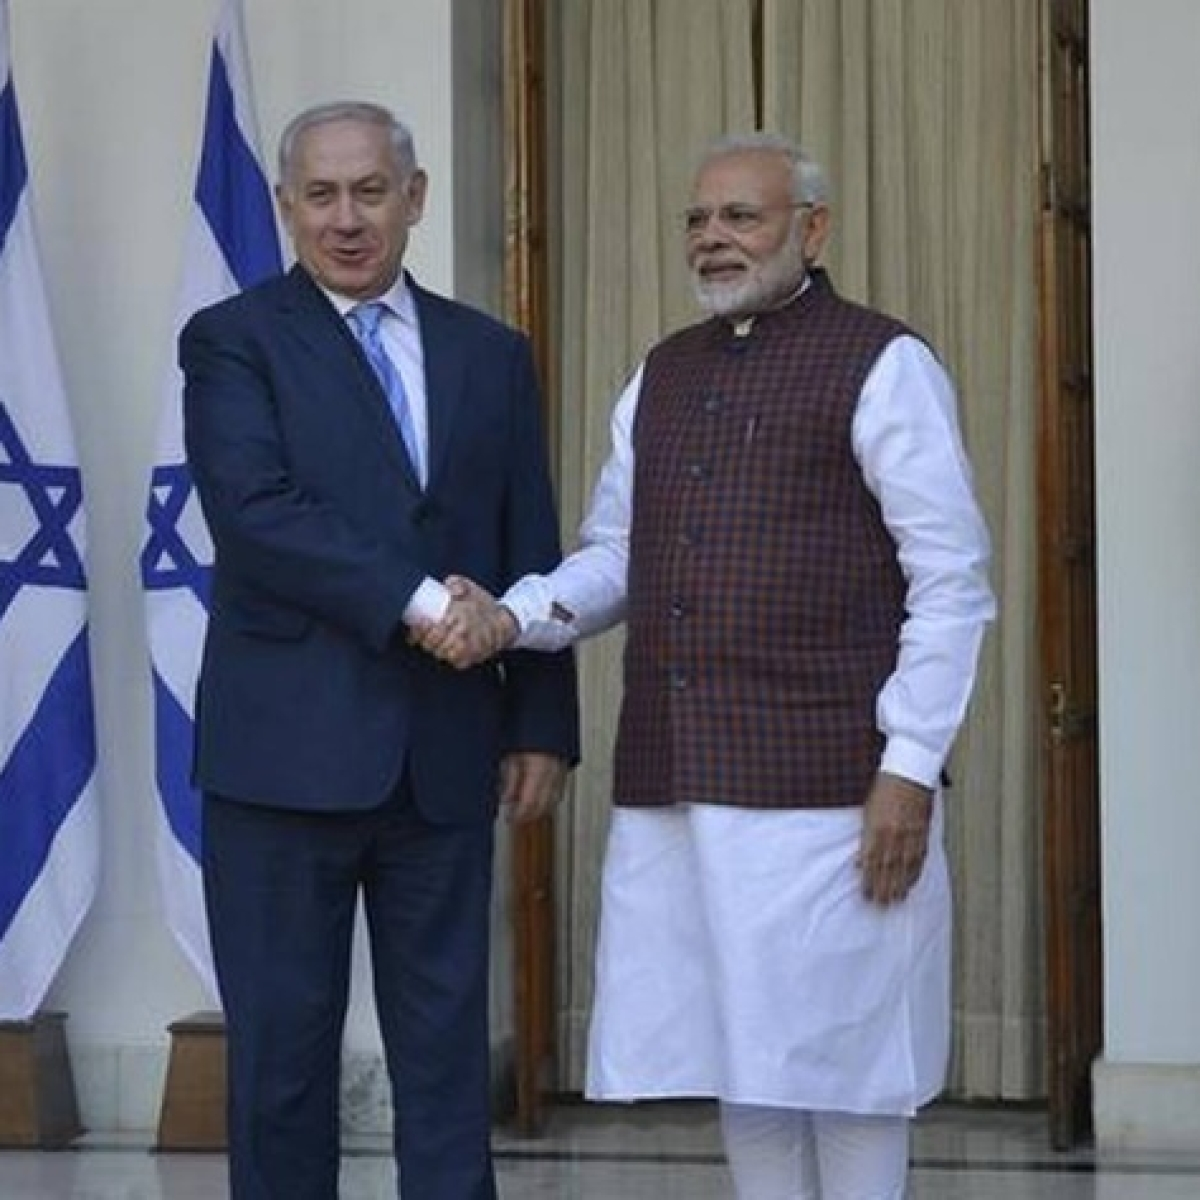 After Benjamin Netanyahu thanks India for hydroxychloroquine, PM Modi says India is ready to help friends